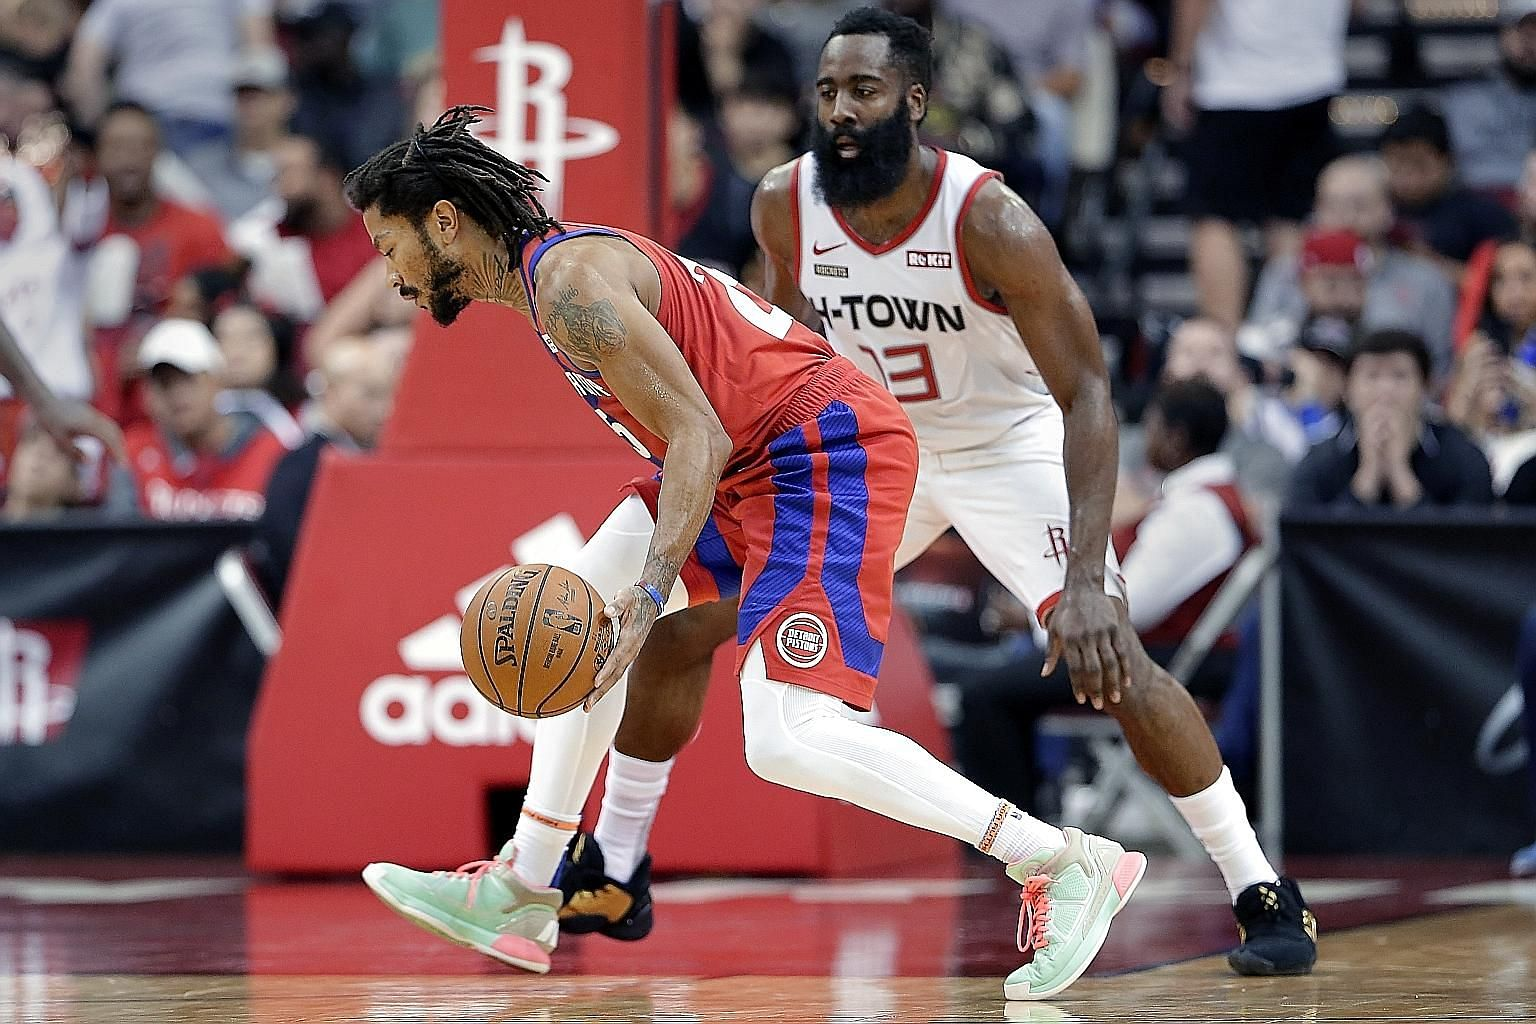 Detroit's Derrick Rose driving around Houston's James Harden, as he came off the bench to score 10 of his 20 points in the final 12 minutes to help the visiting Pistons outlast the Rockets 115-107.